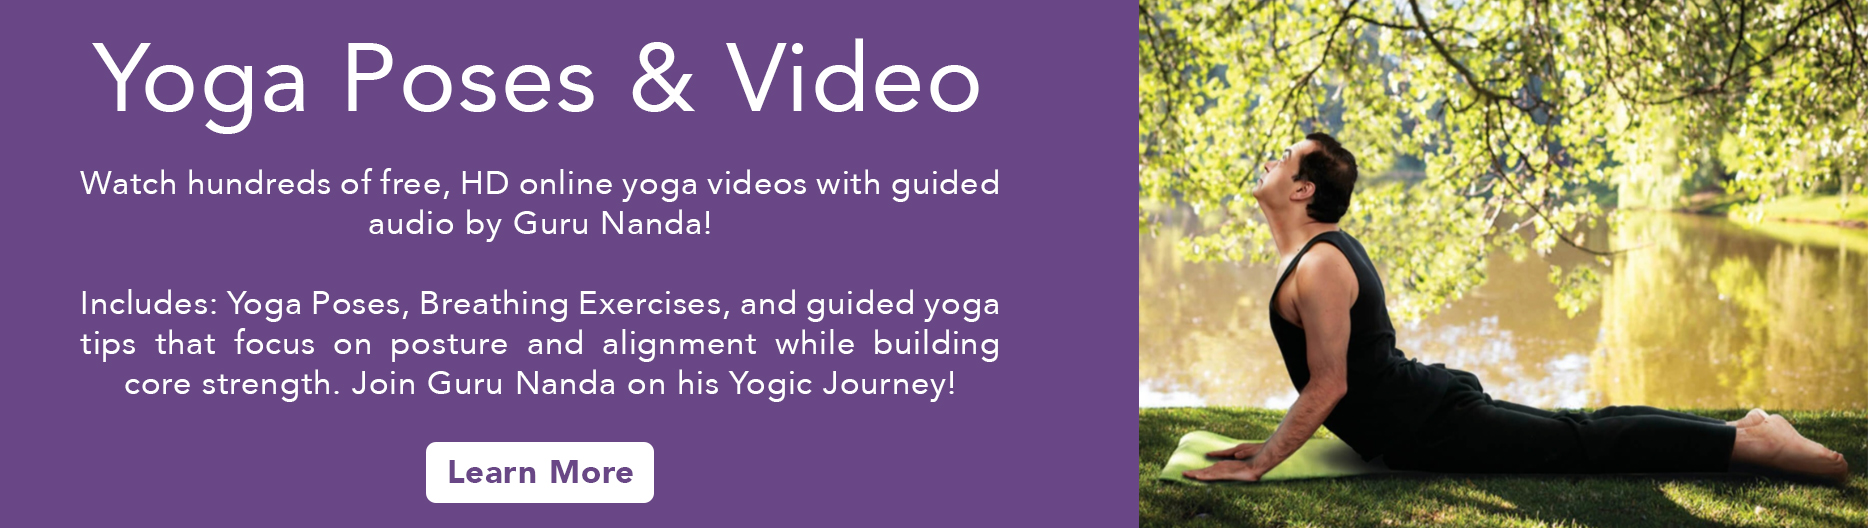 yoga-poses-and-video4.jpg